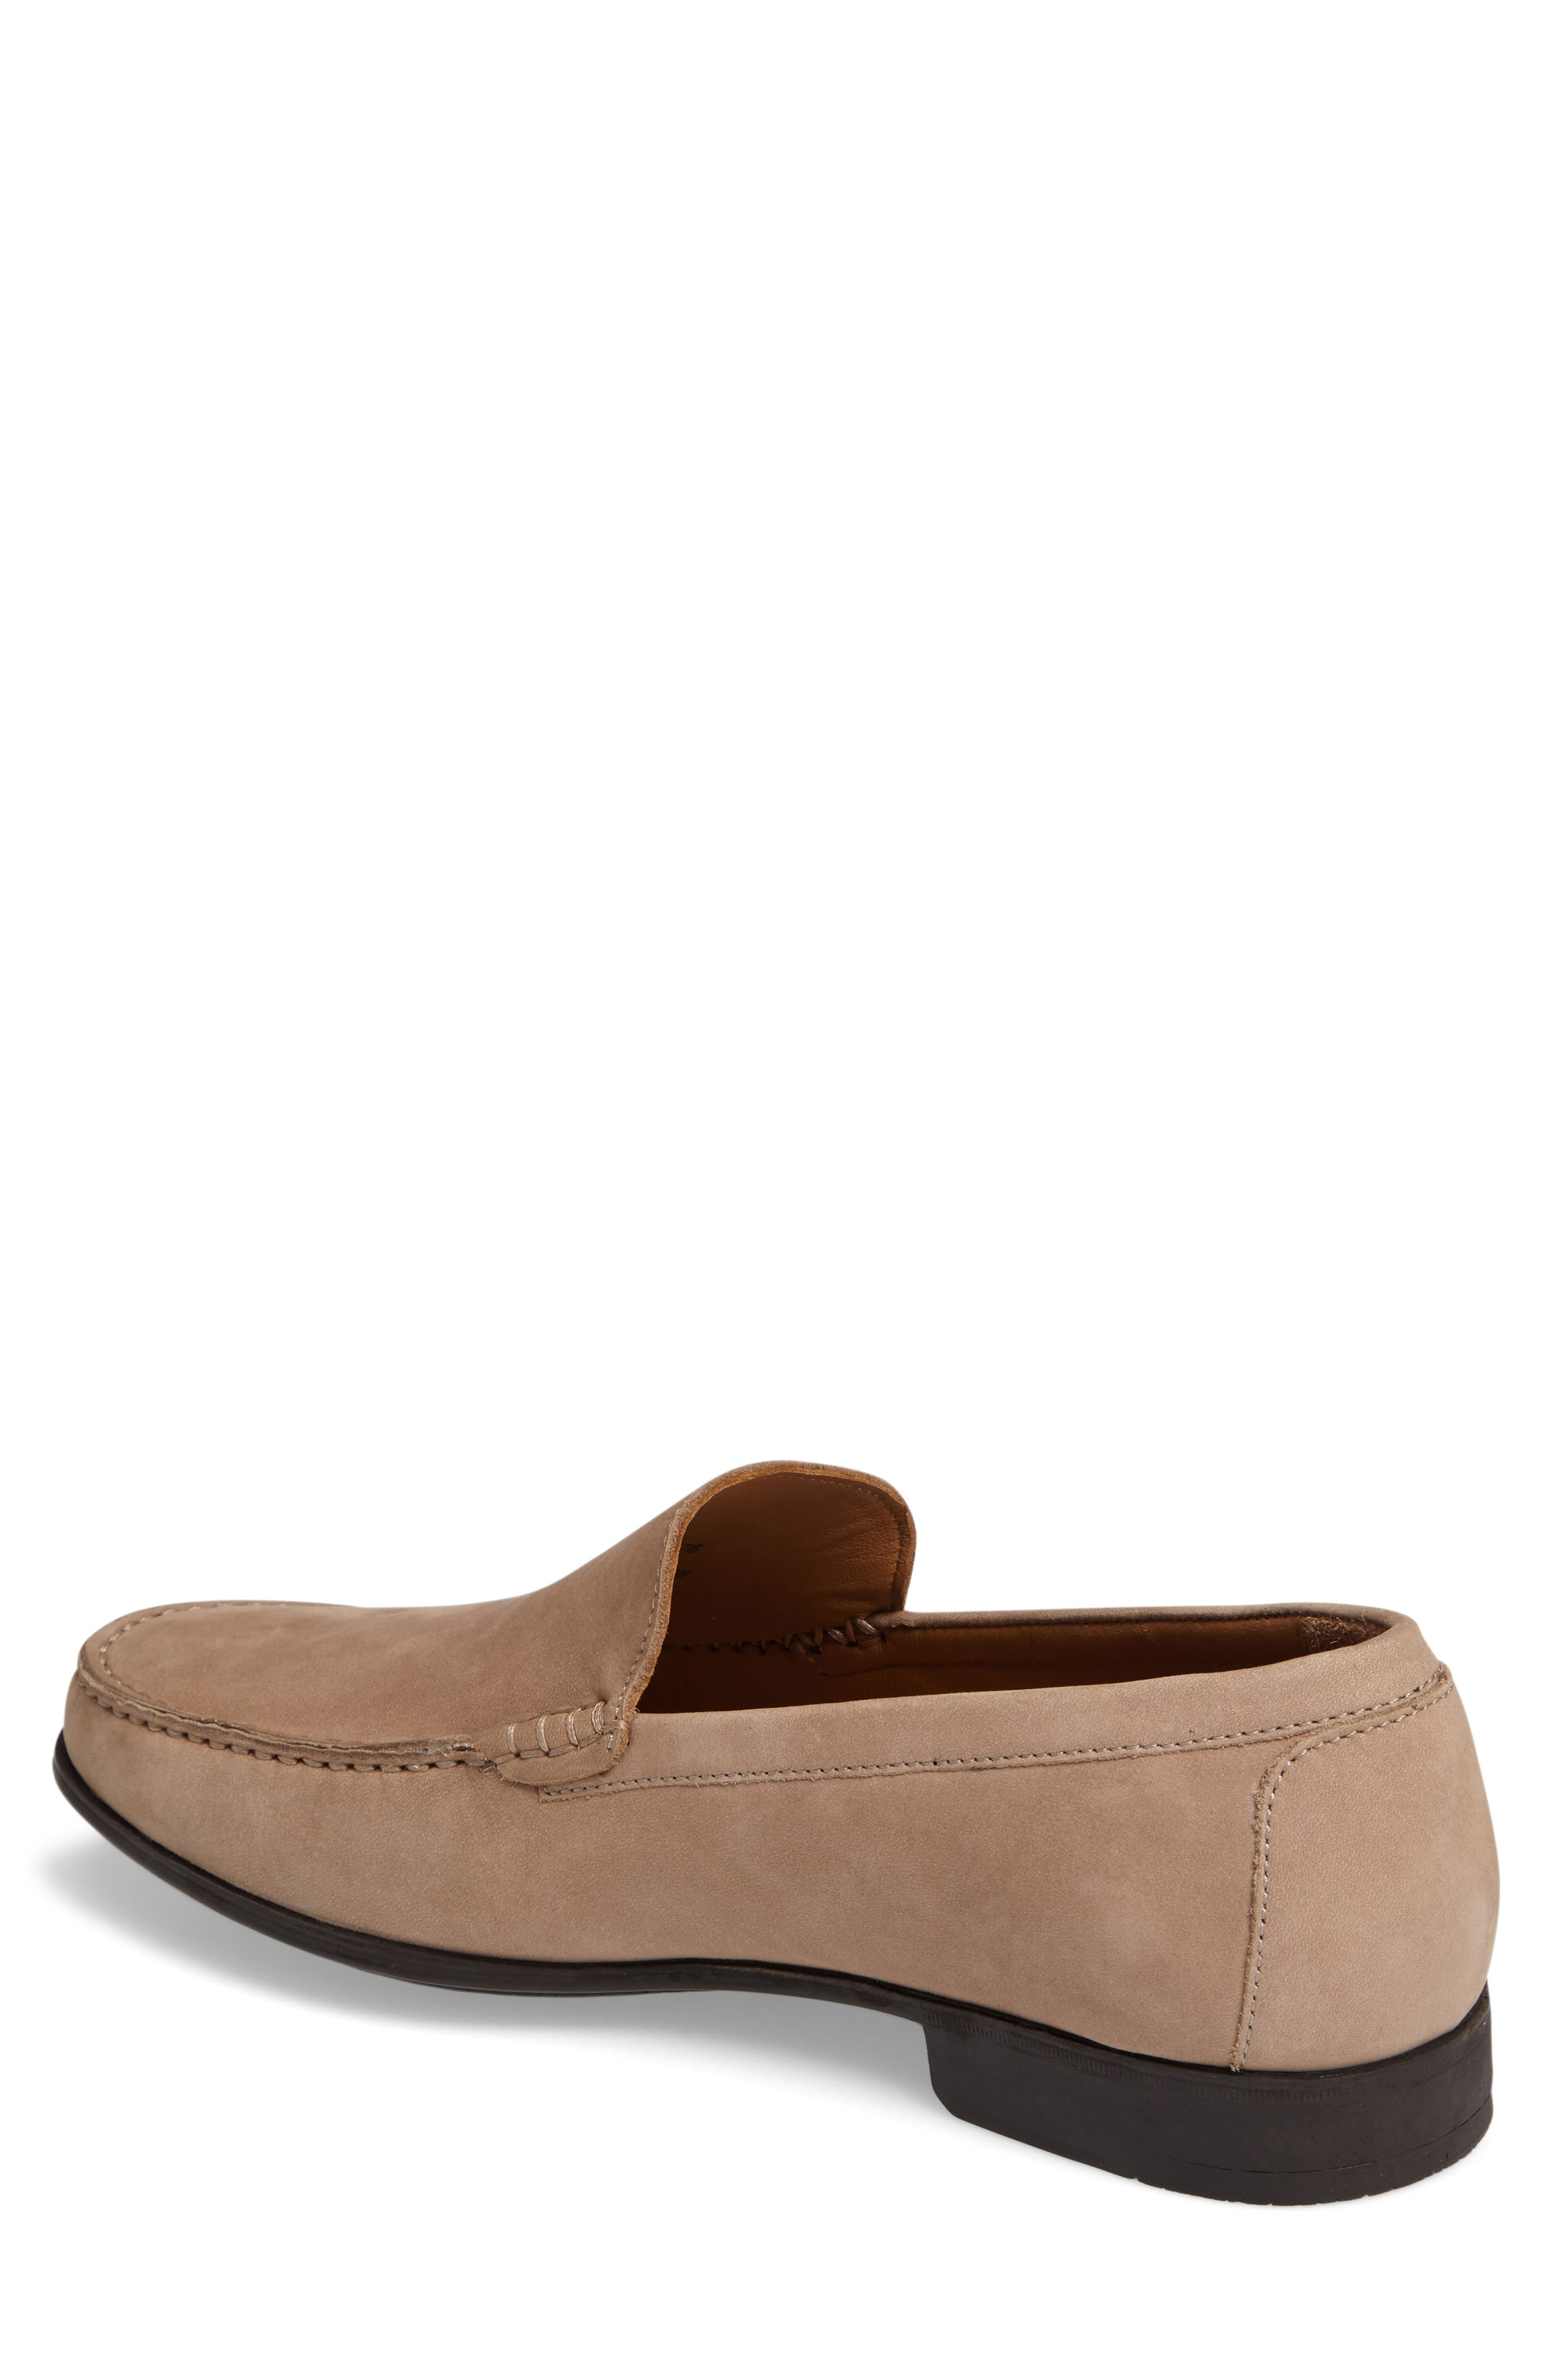 Cresswell Venetian Loafer,                             Alternate thumbnail 2, color,                             Sand Nubuck Leather